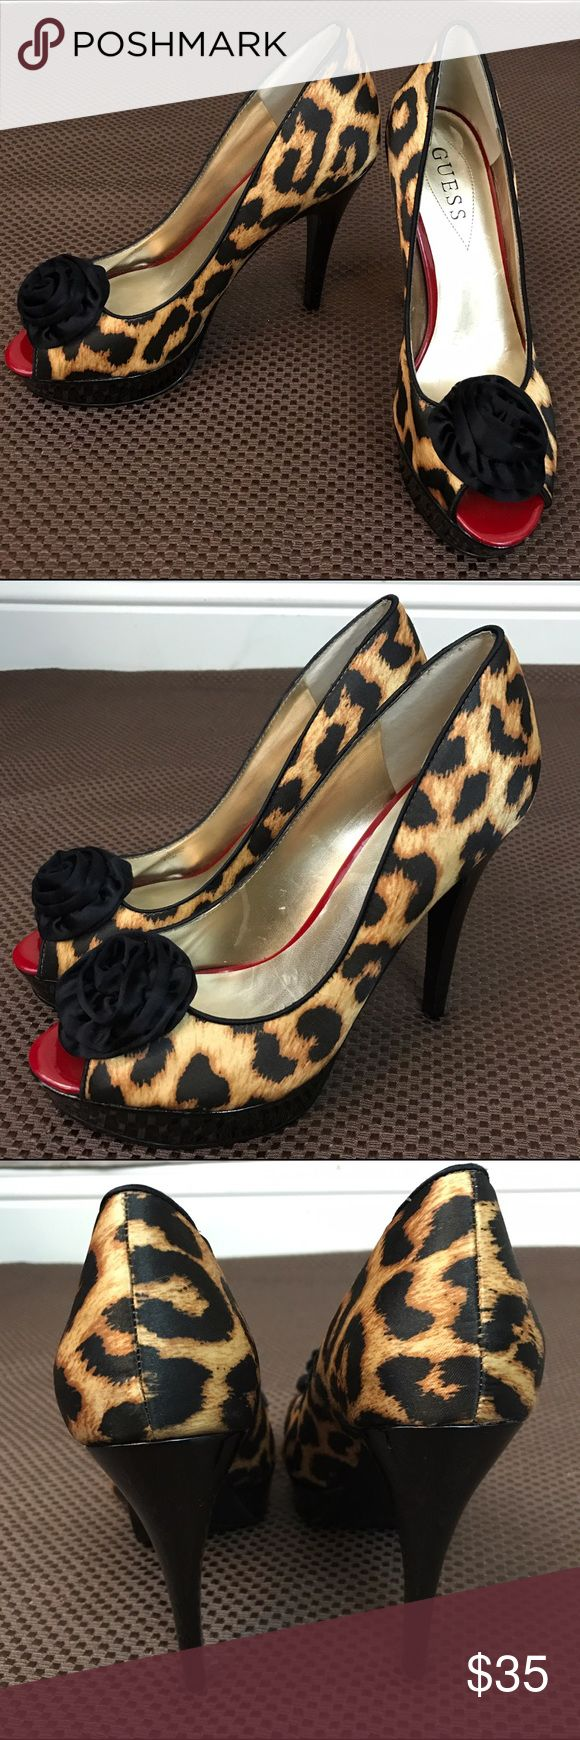 """Guess Pin Up animal print high heels Gently pre-owned. 5"""" heel height. Some small indents in heels      No major flaws to note and lots of wear left in these beauties. Guess Shoes Heels"""